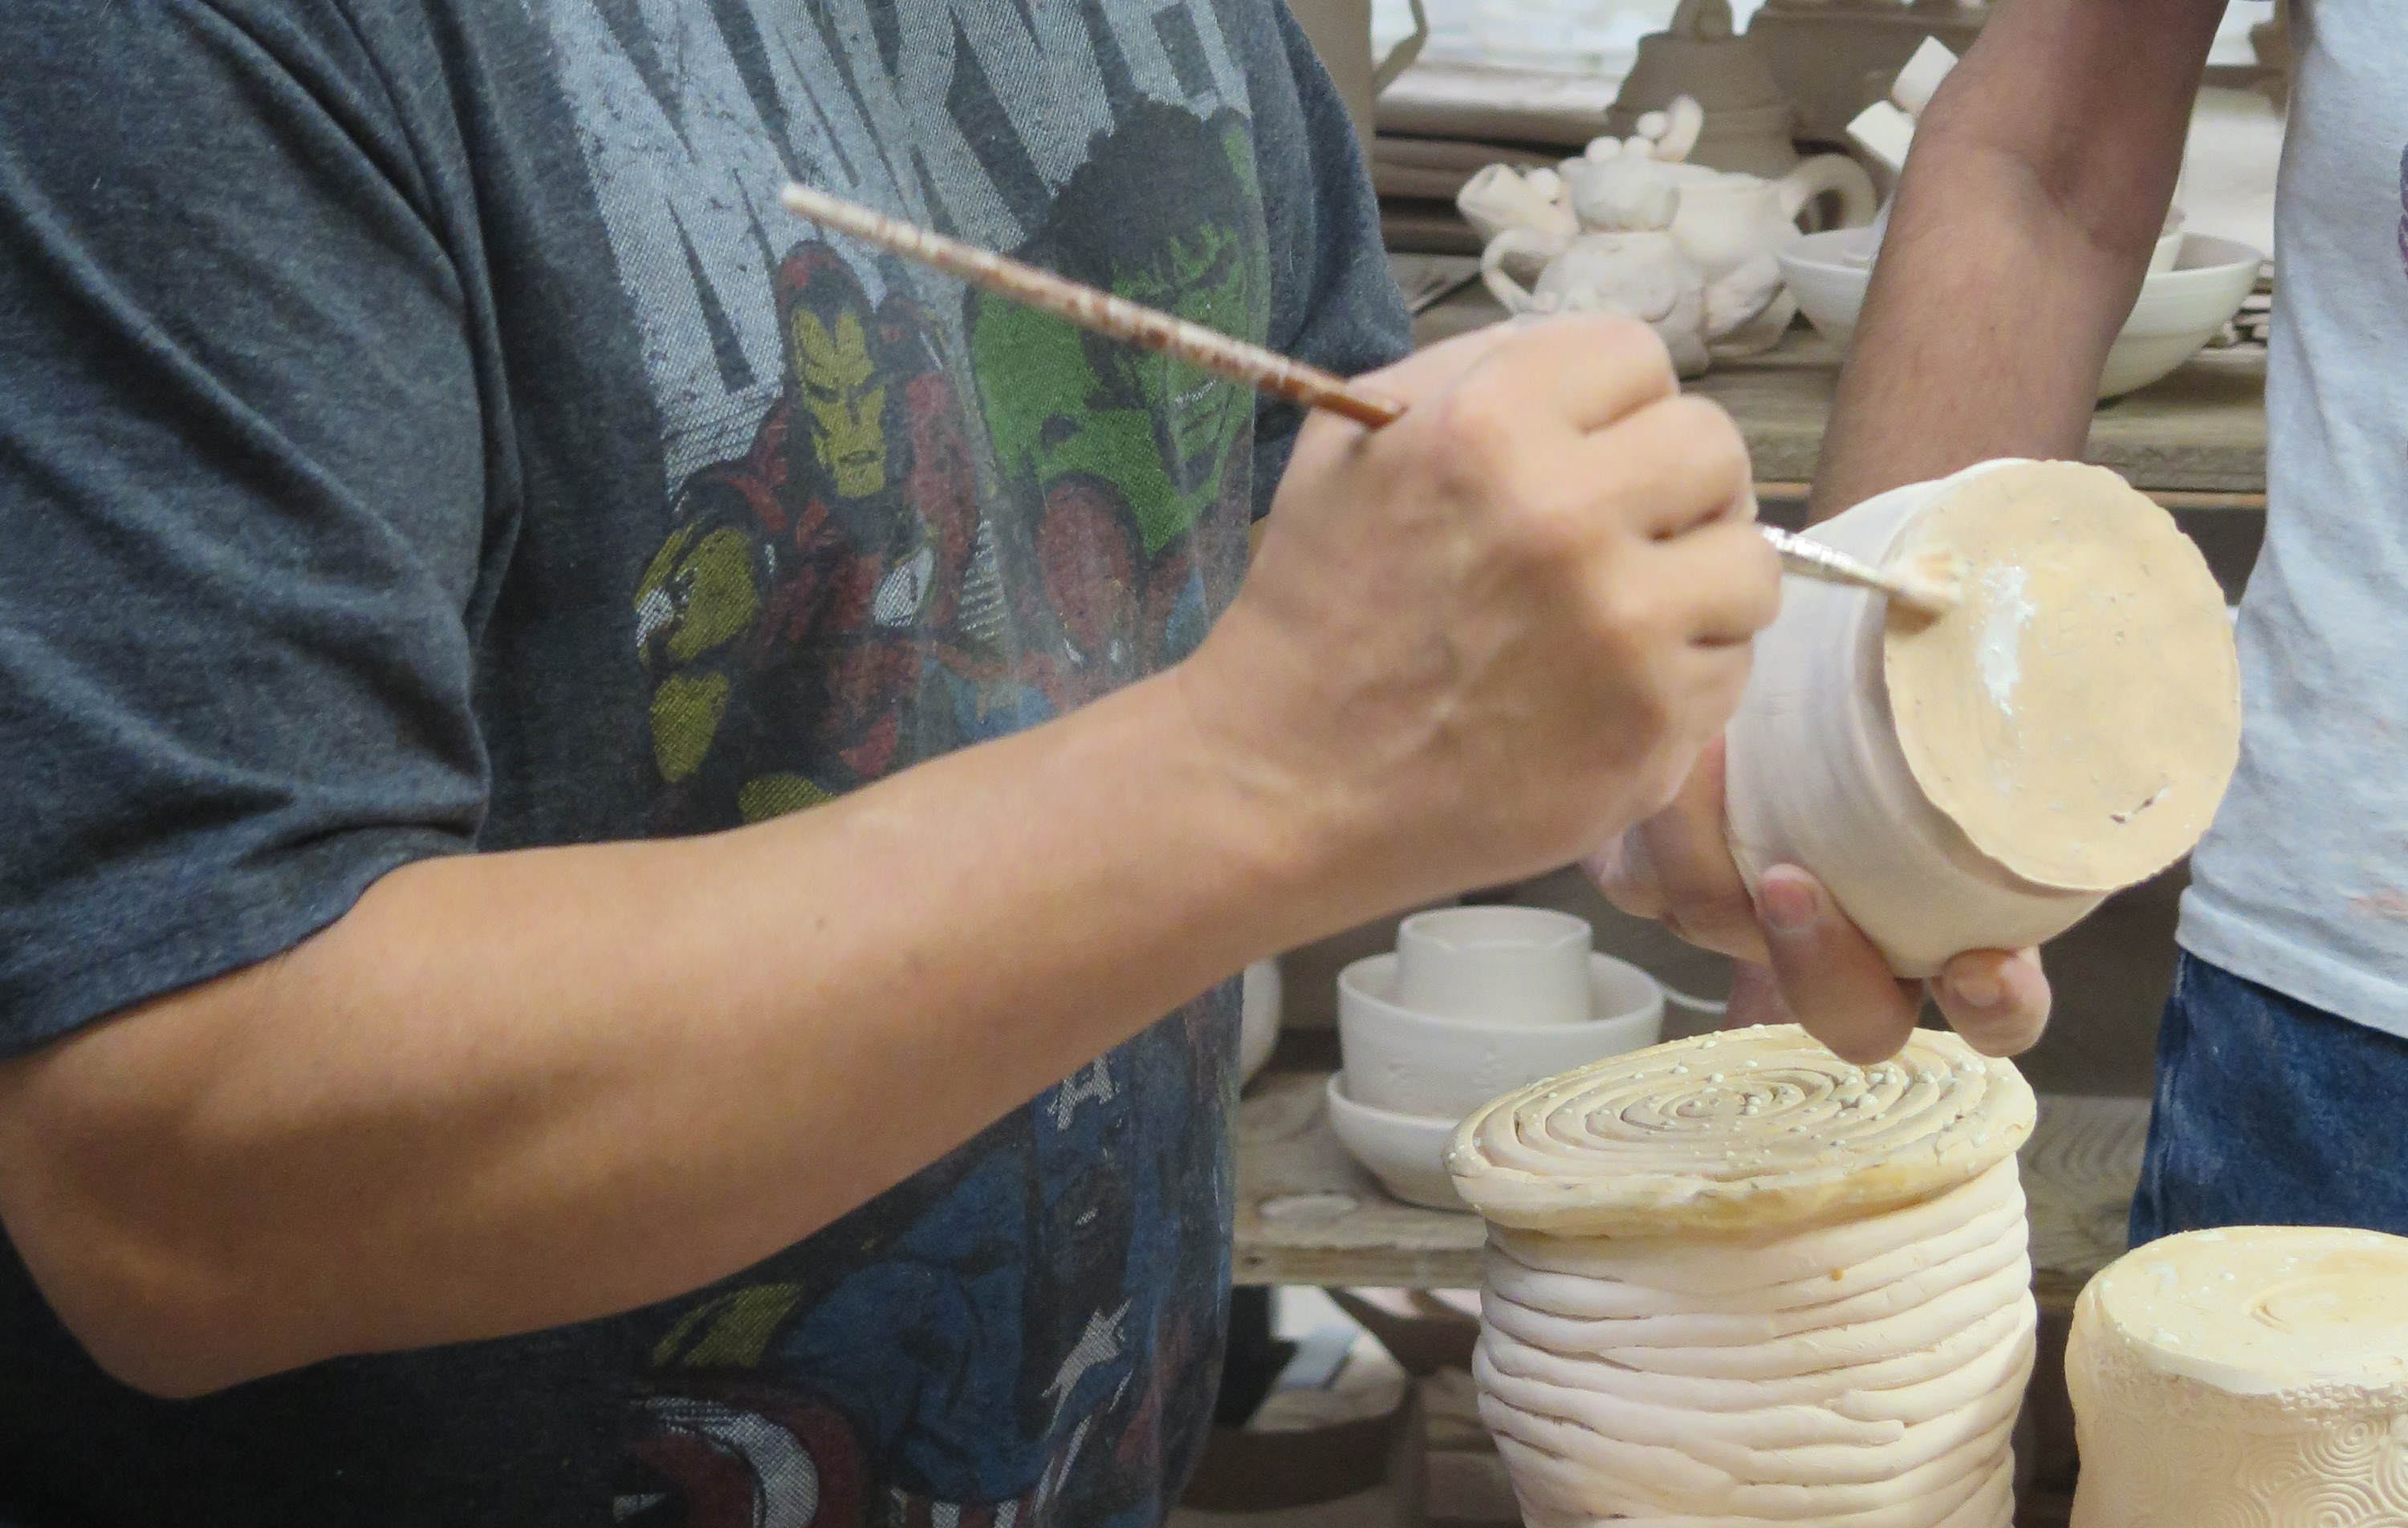 A cropped photo of hands painting a ceramic vessel